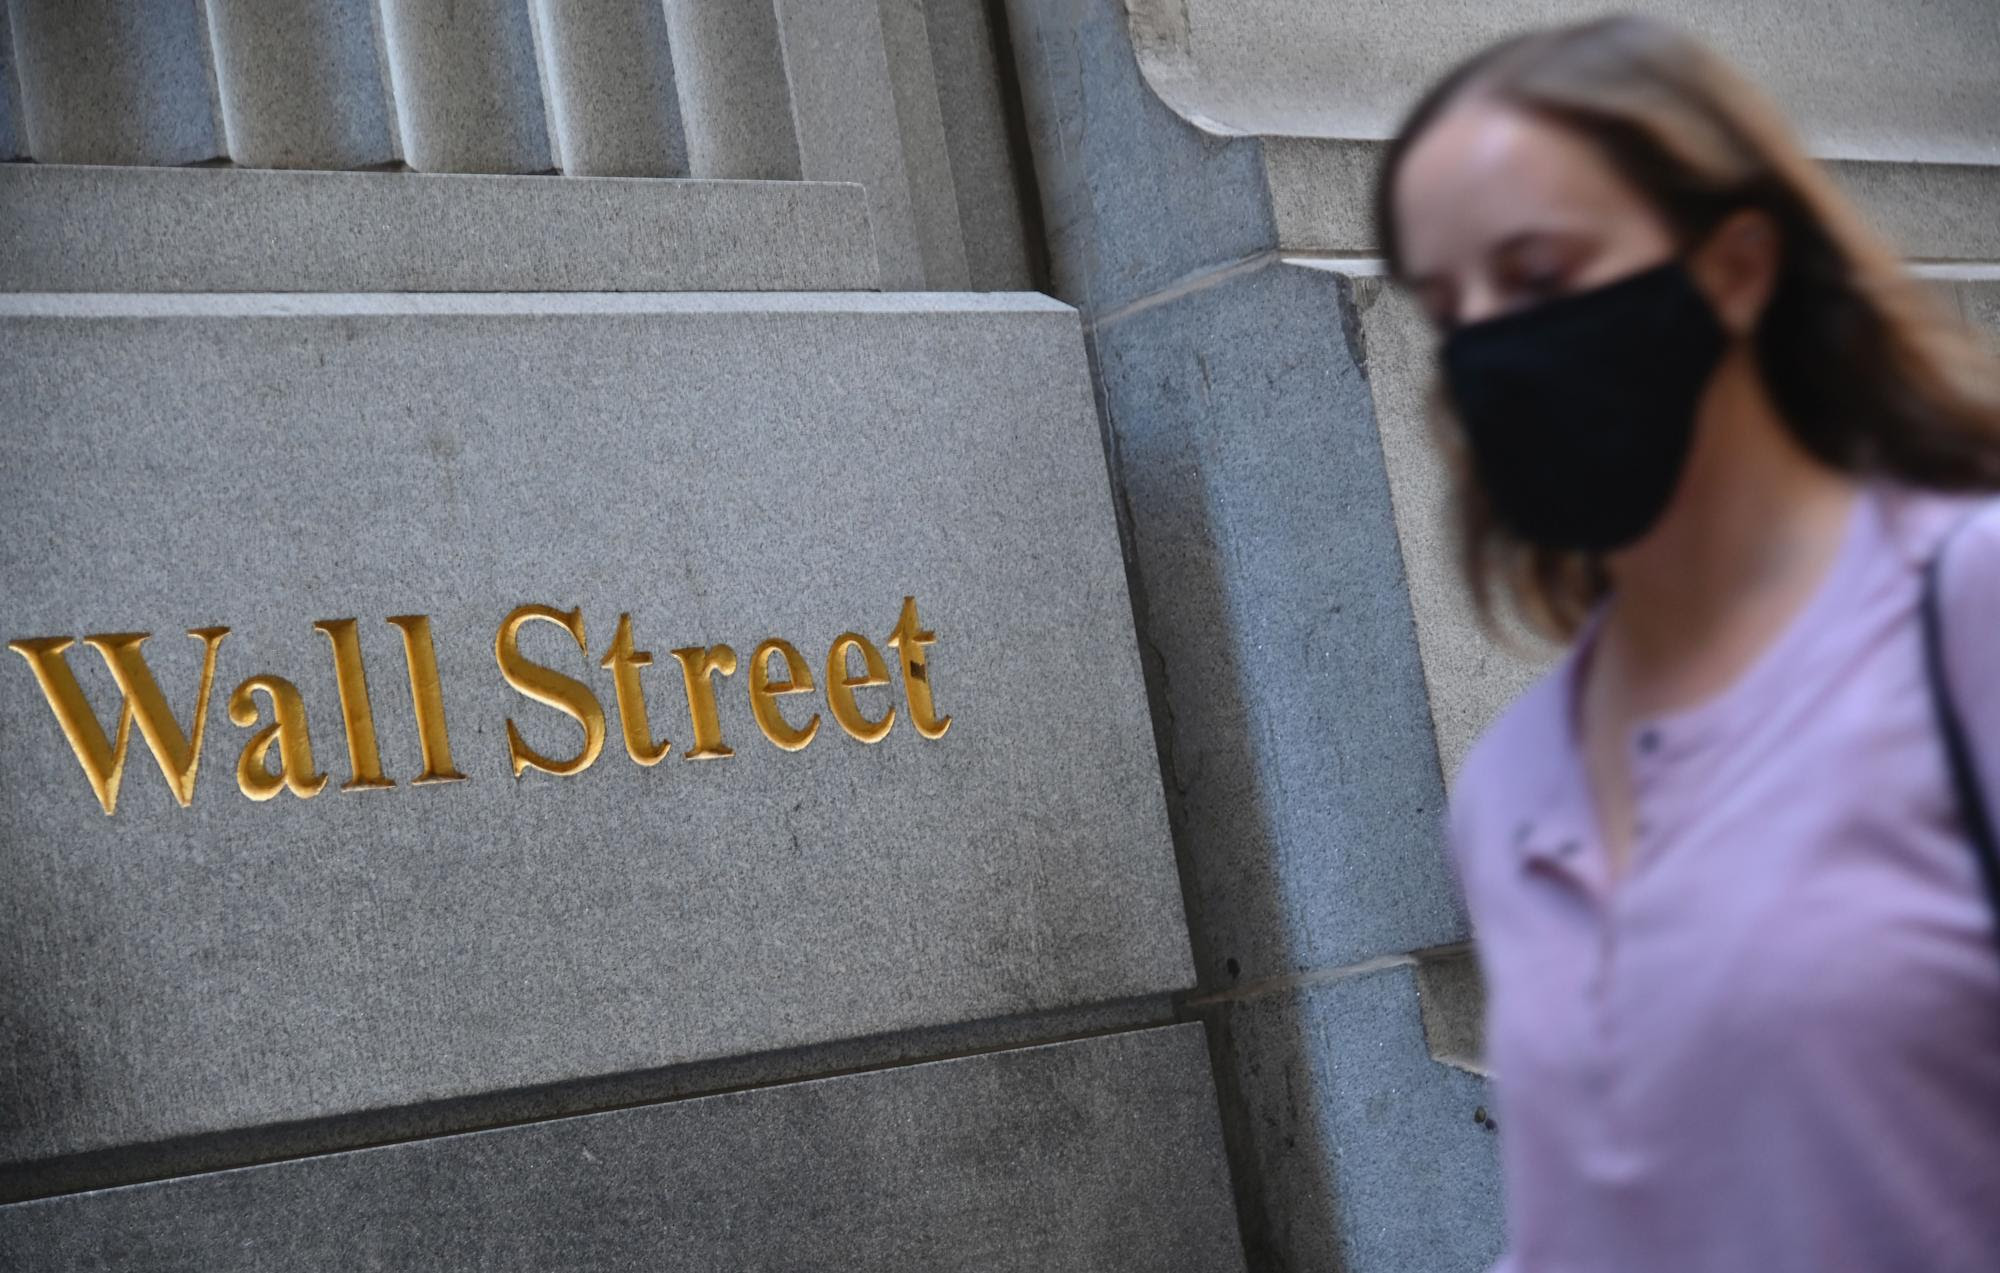 Stock market news live updates: Futures lose steam after unexpected jump in jobless